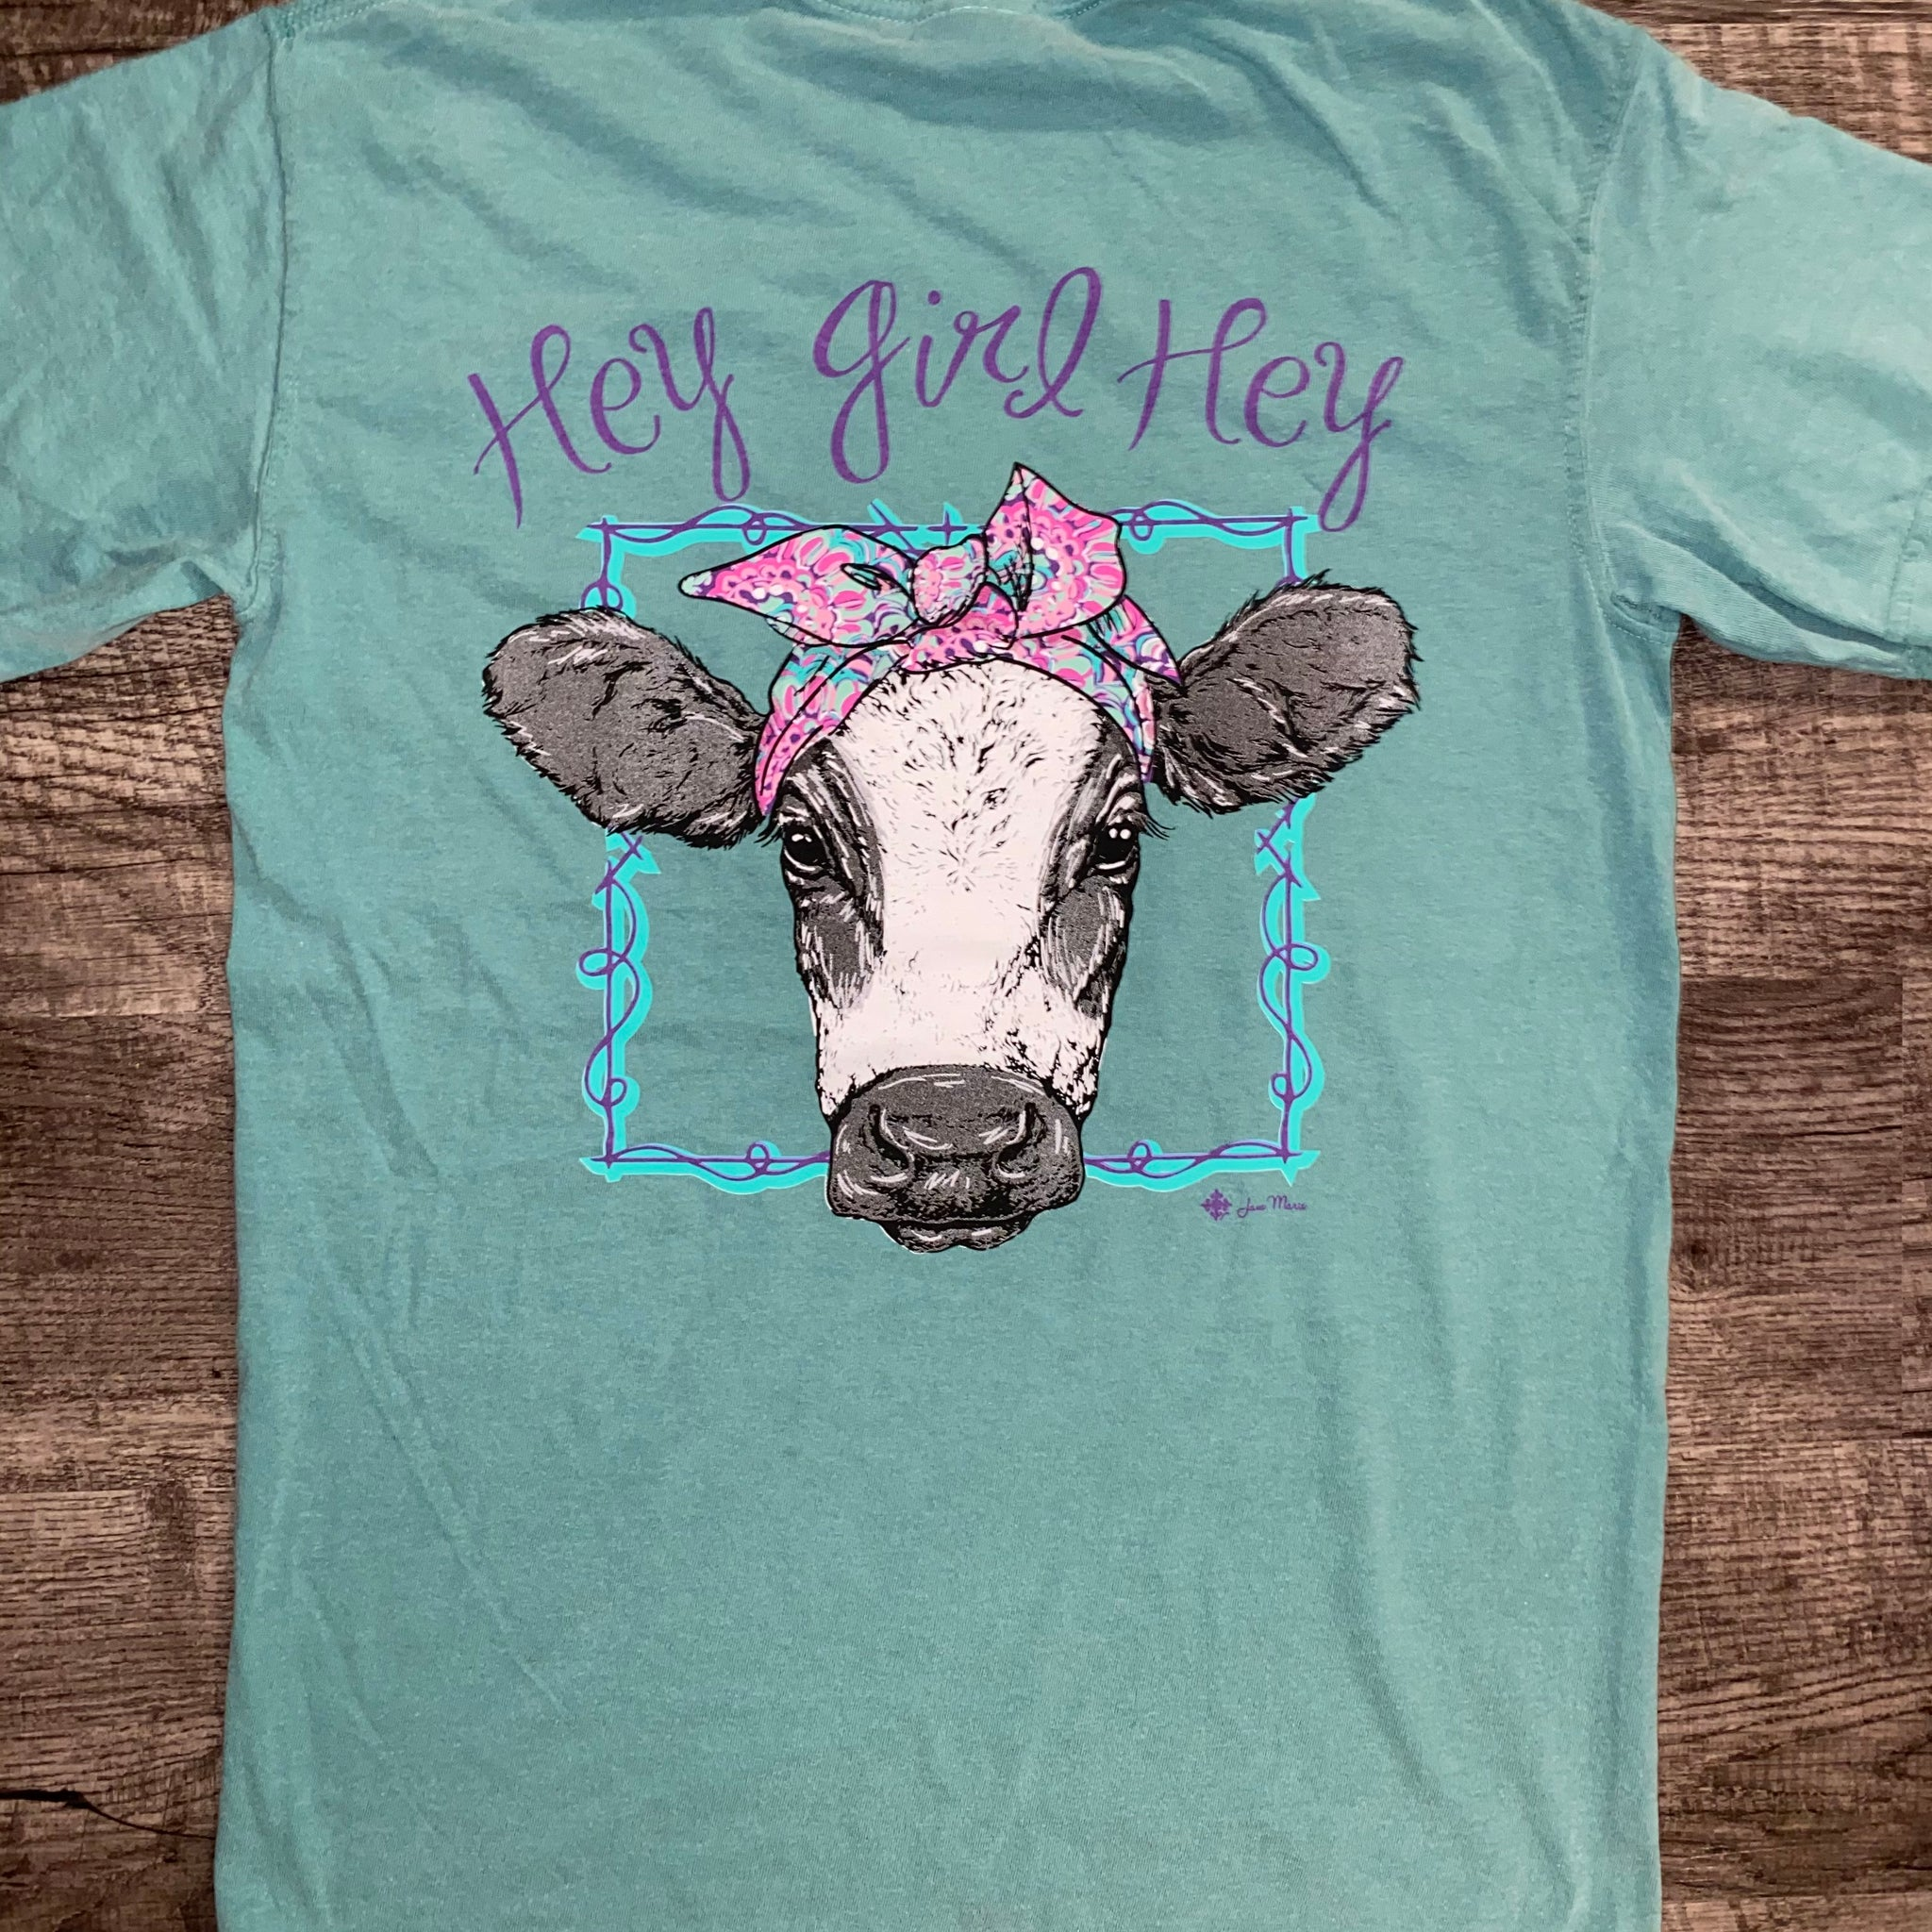 Jane Marie- Hey Girl Hey T-Shirt